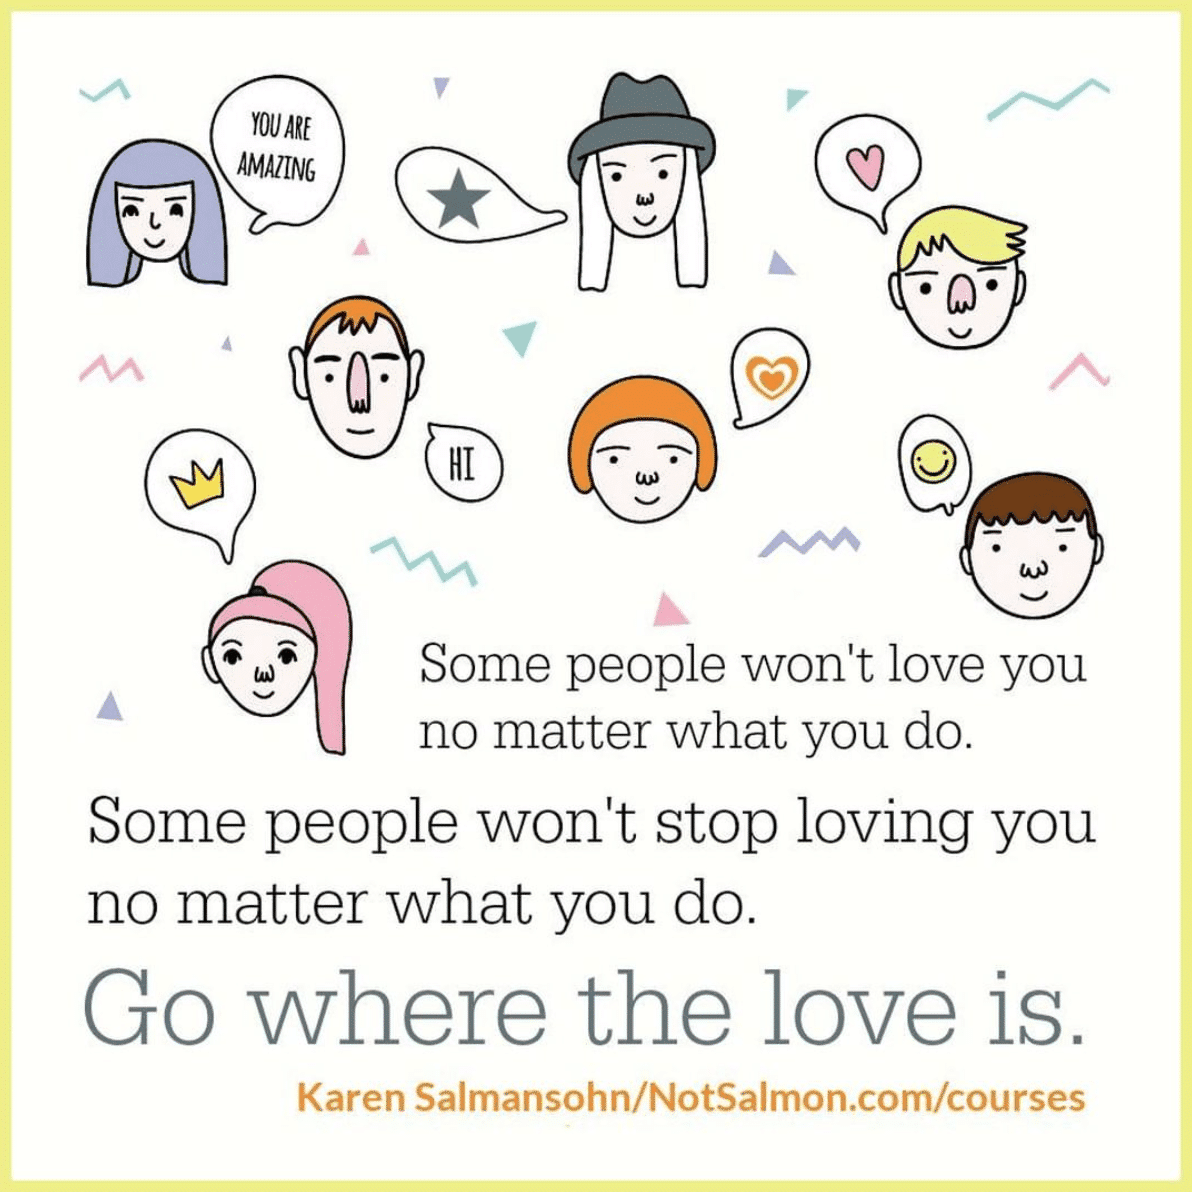 go where the love is quote salmansohn